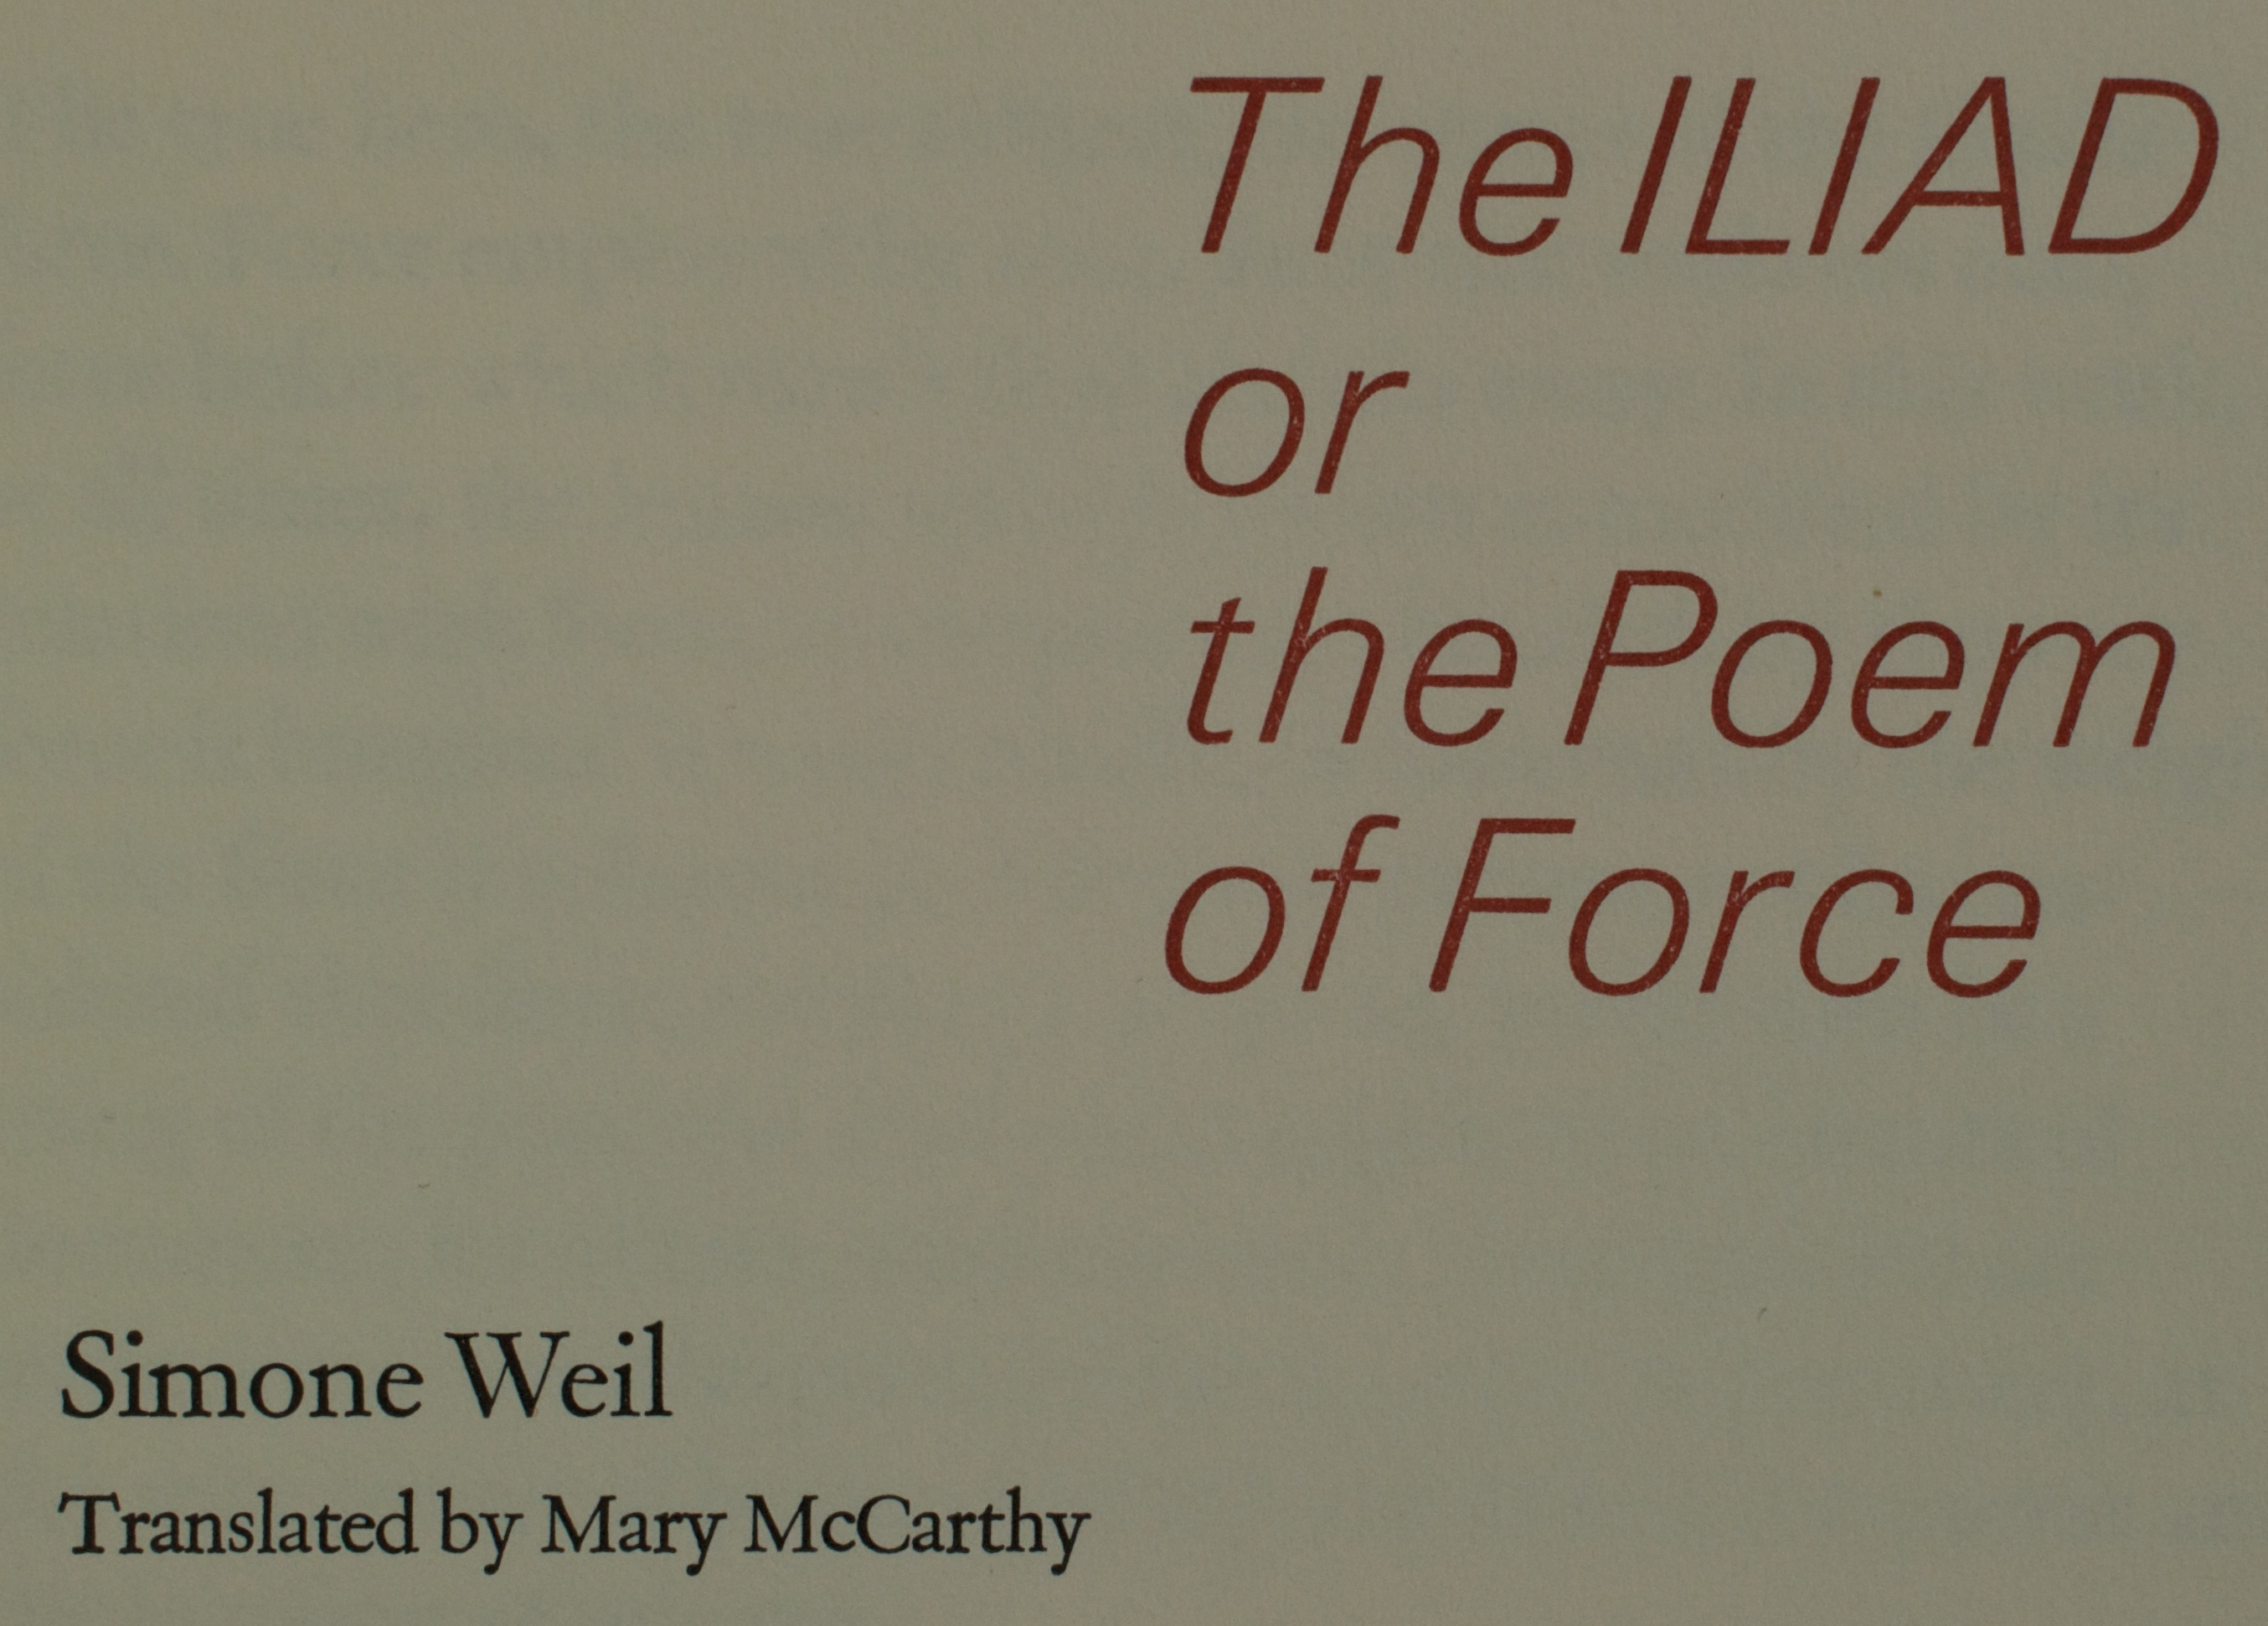 the iliad or the poem of force by simone weil published by the regarding the use of force and war in the iliad really resonated the term her familiarity the iliad makes sense as she had already mastered